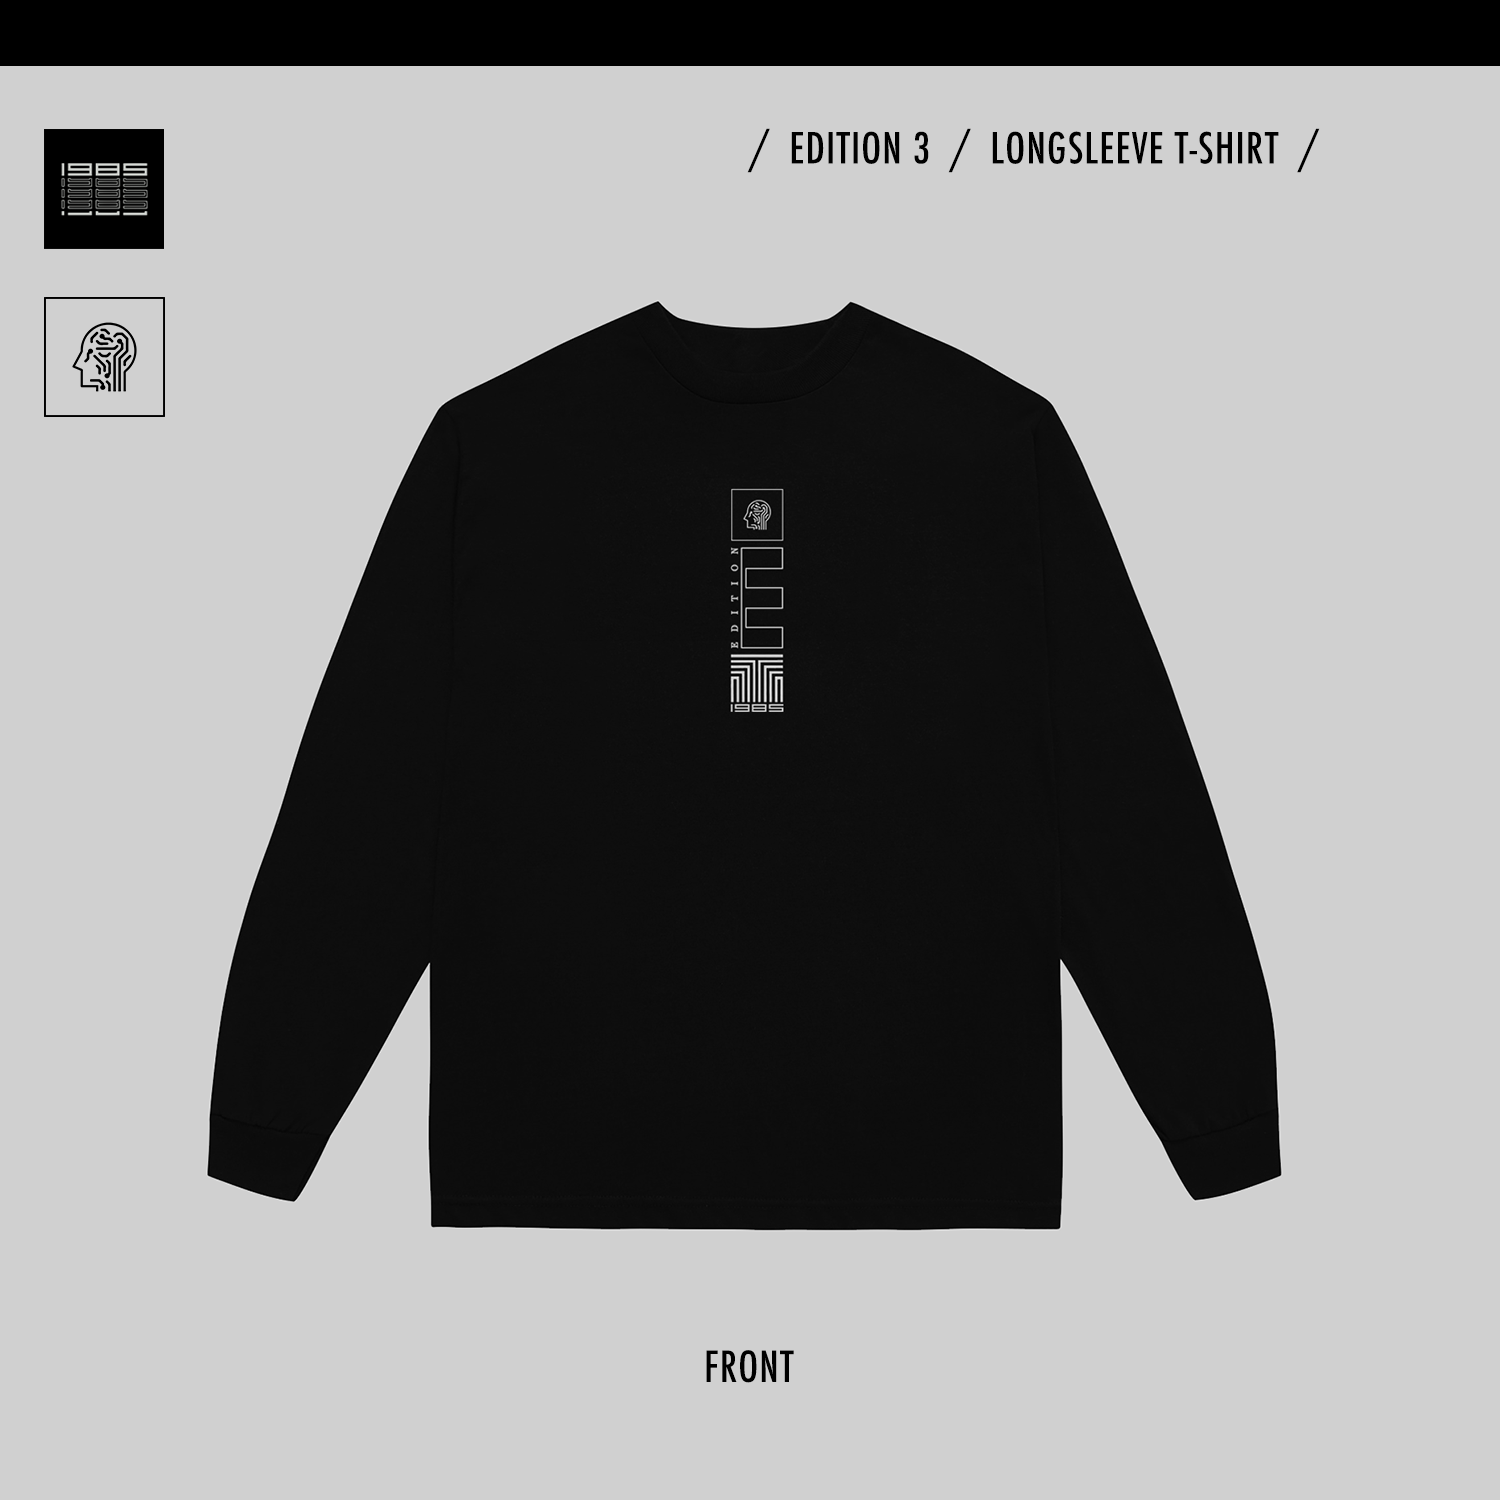 EDITION 3 LONG-SLEEVE T-SHIRT